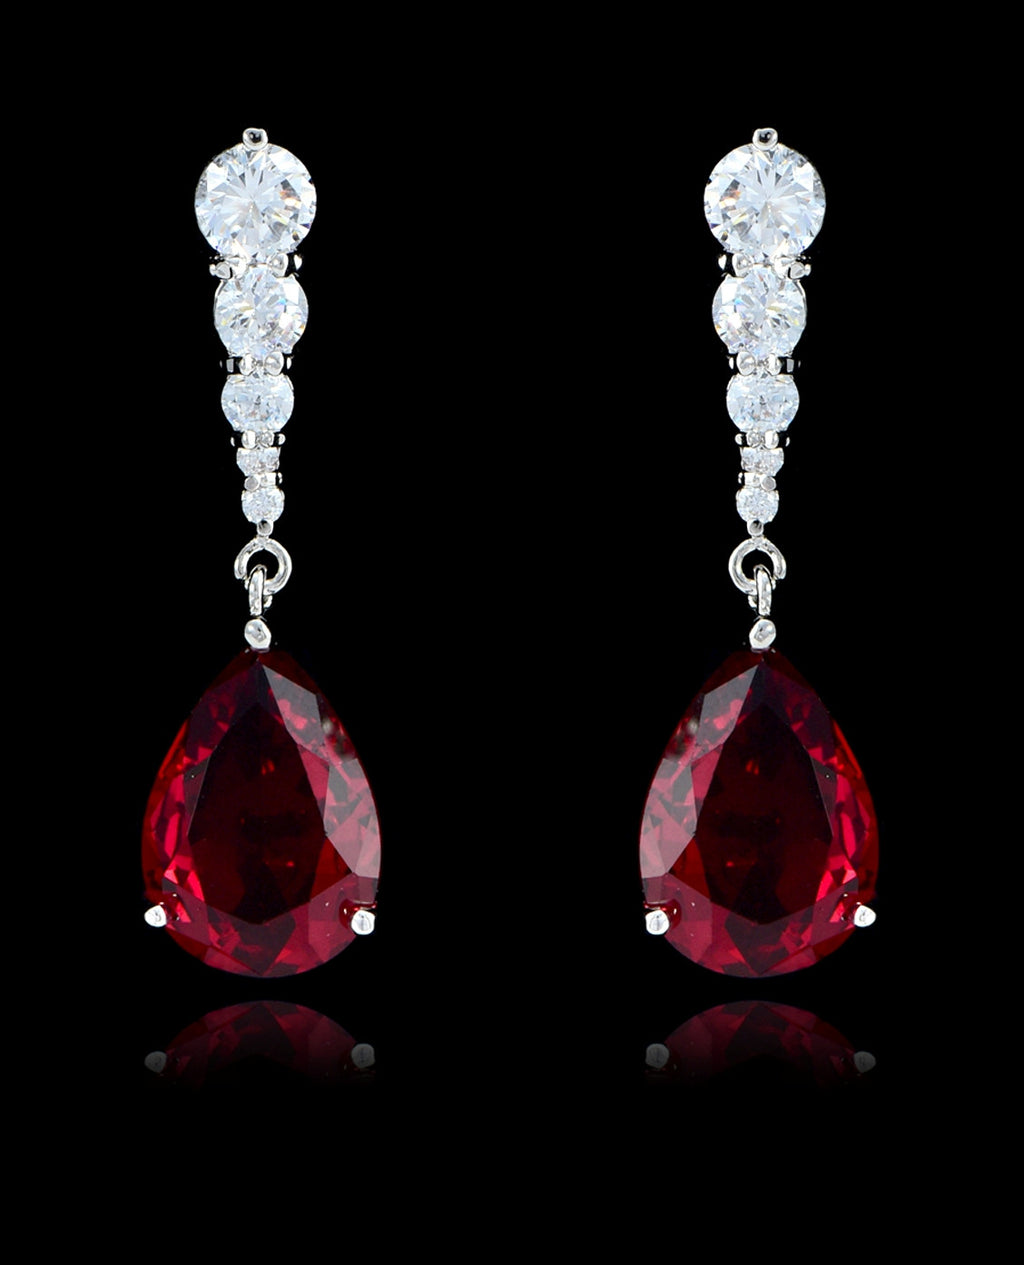 Garnet Cubic Zirconia Teardrop Earrings - Bedazzled By Jeanelle - 1